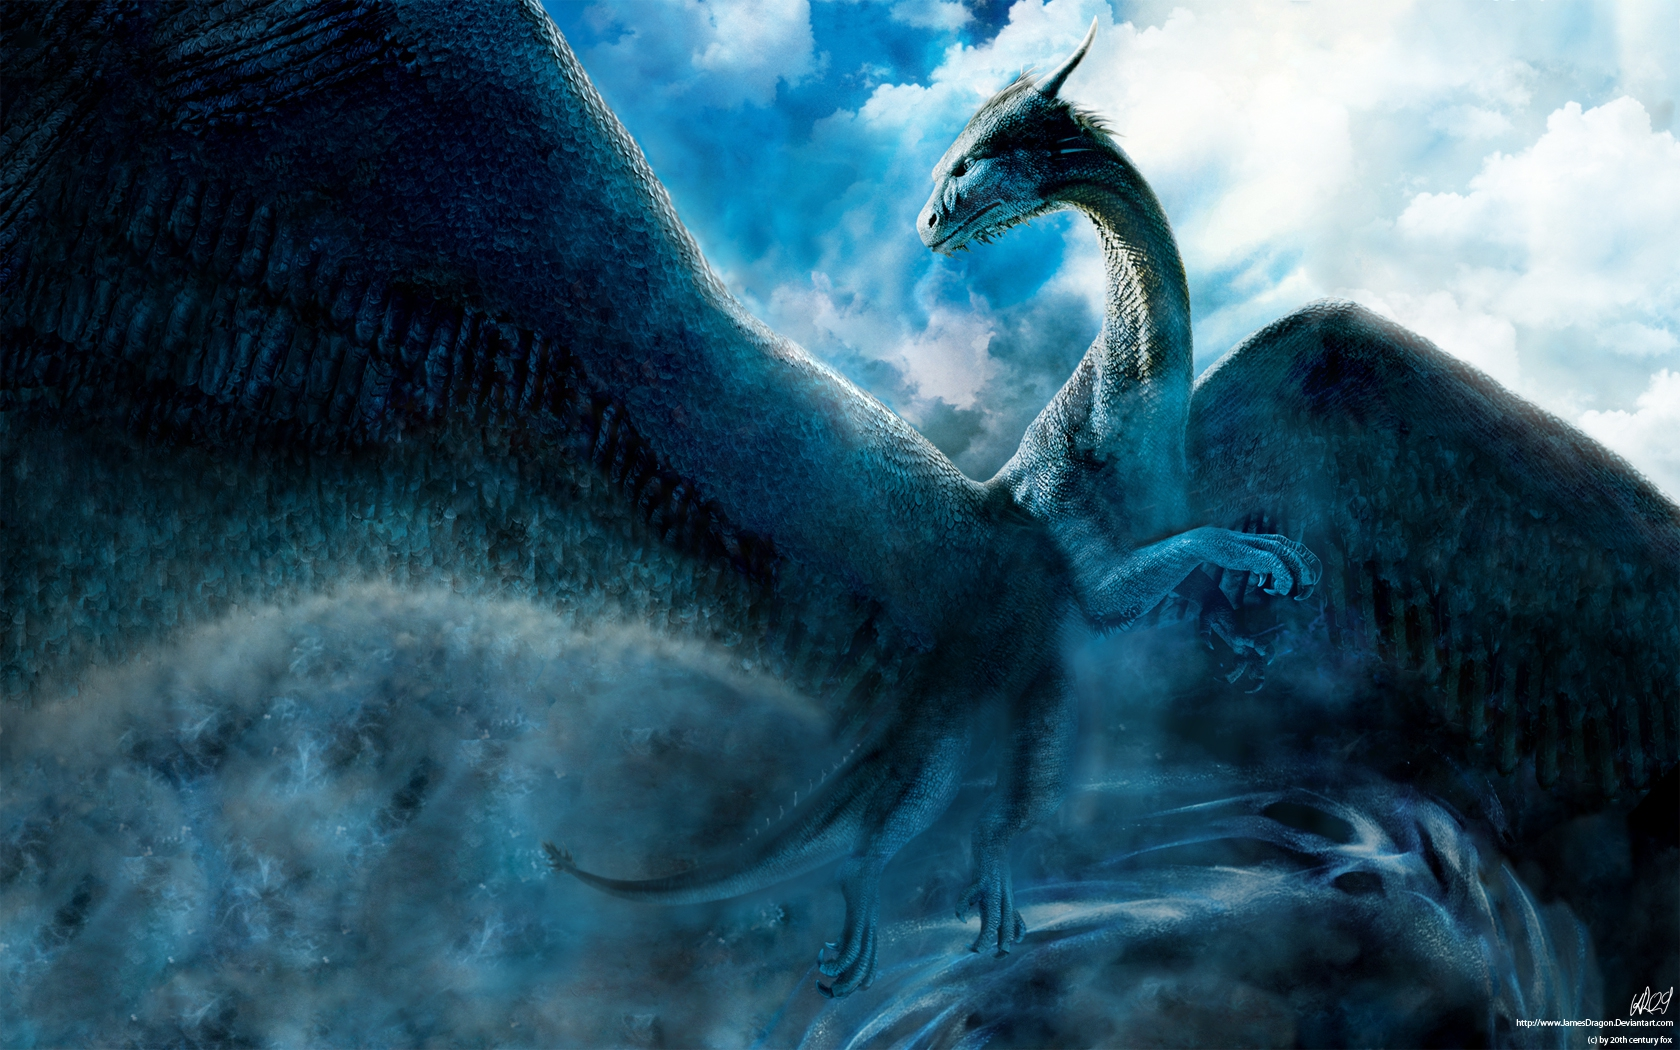 saphira_reloaded_by_jamesdragon